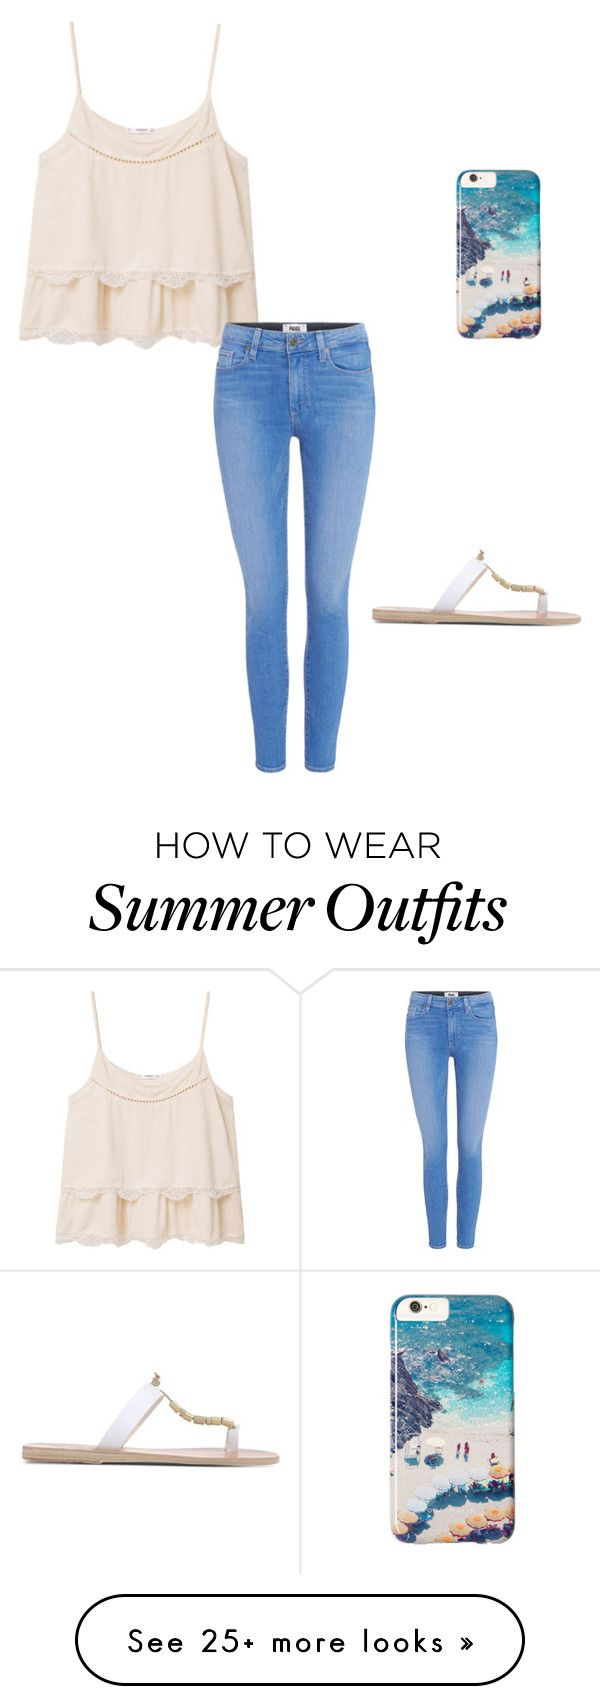 """""""How to wear summer outfits"""" by sydneyallen1025 on Polyvore featuring MANGO, Gray Malin, Ancient Greek Sandals and Paige Denim"""